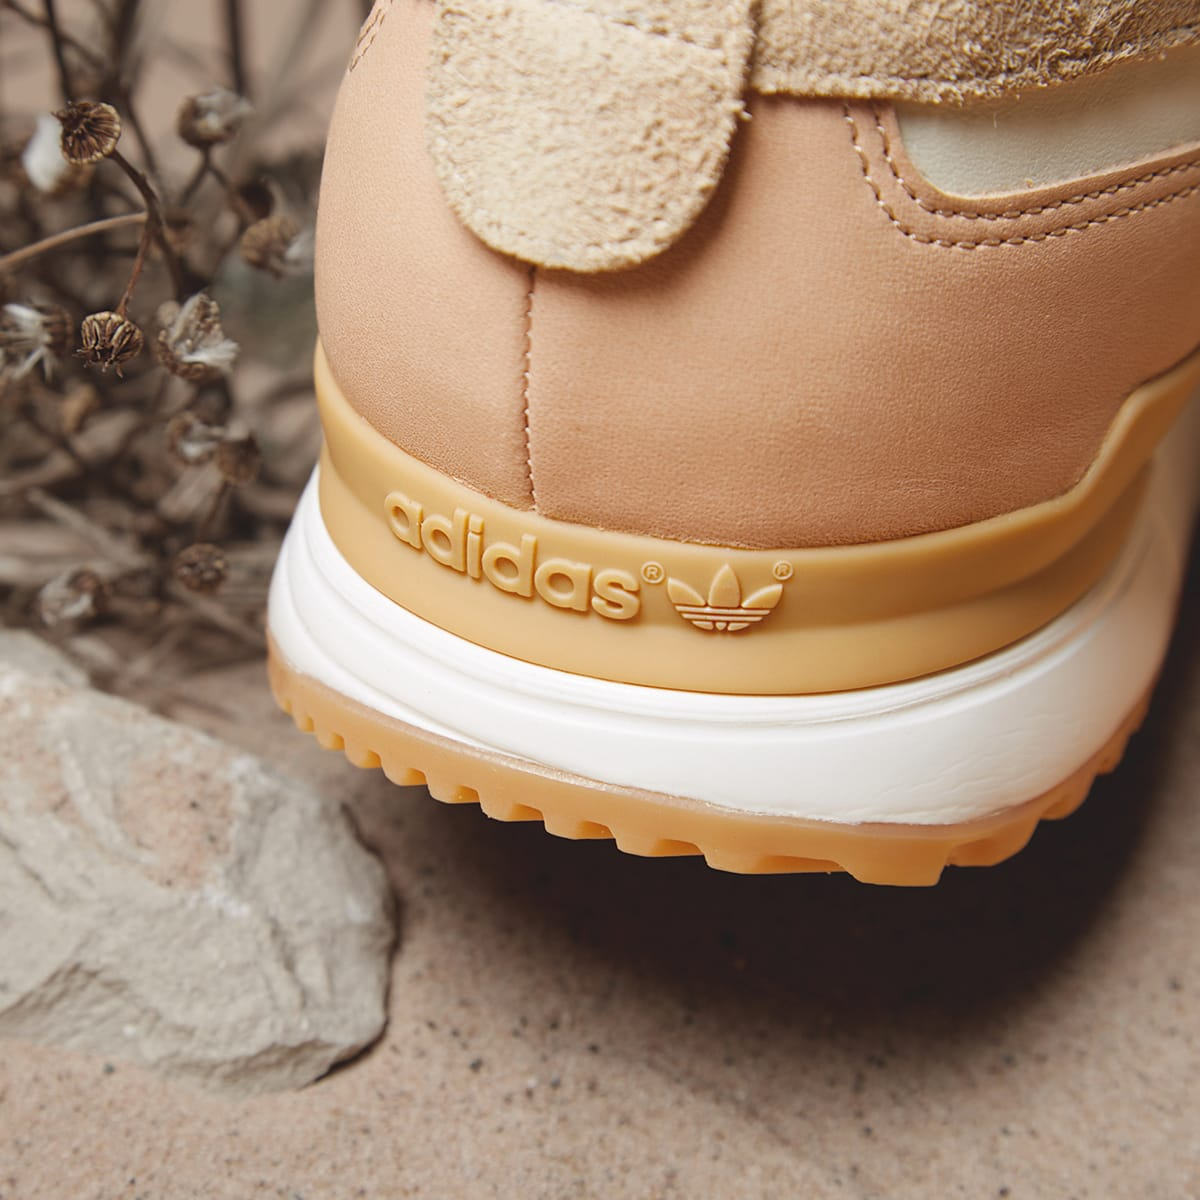 End Clothing Adidas ZX 700 Boat Side | shoes | Adidas